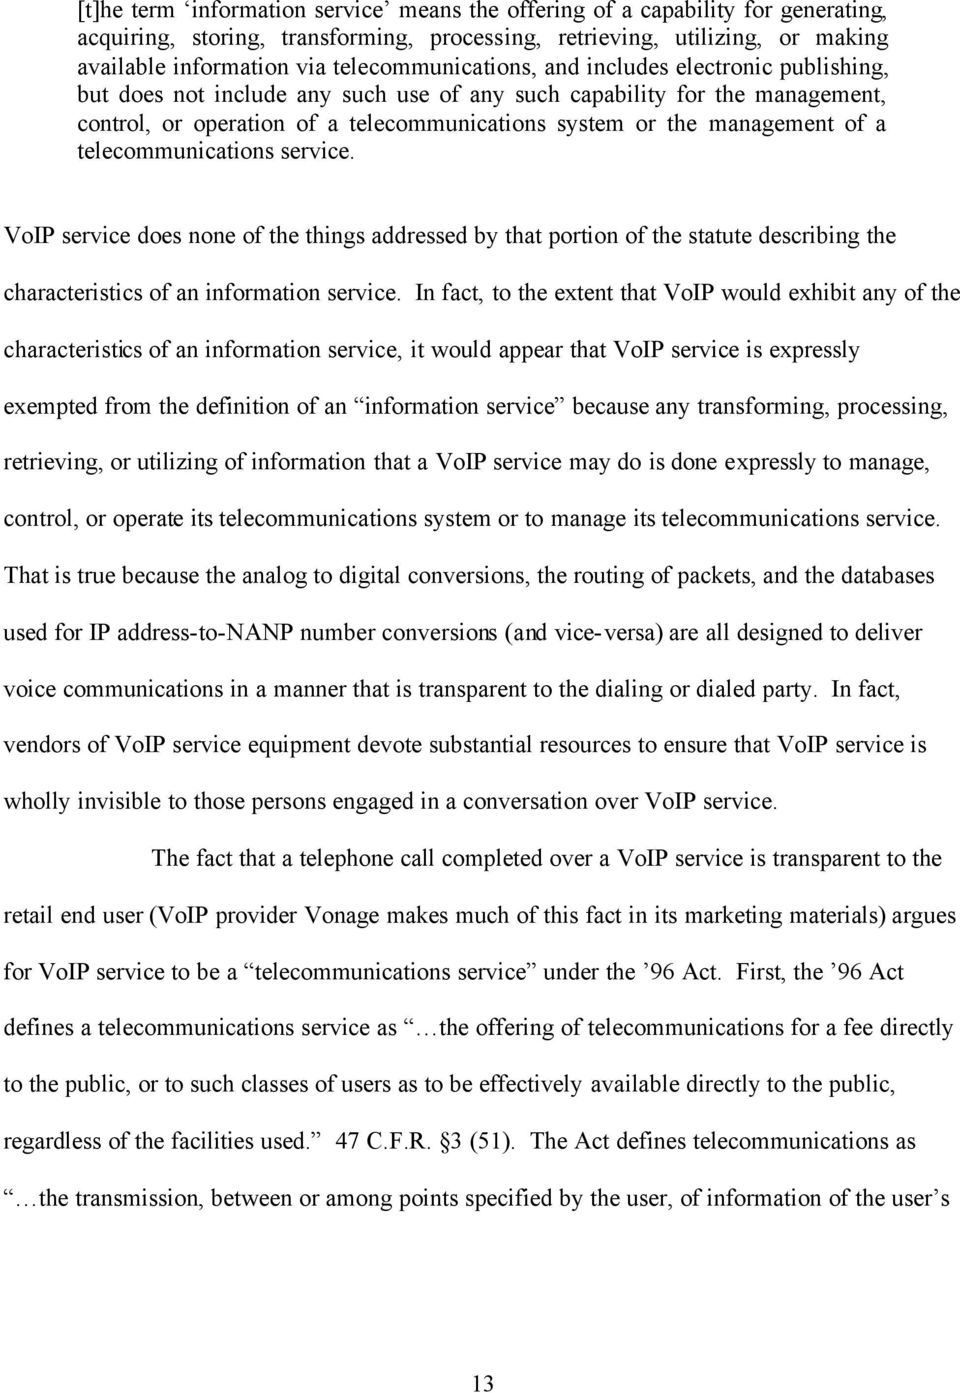 management of a telecommunications service. VoIP service does none of the things addressed by that portion of the statute describing the characteristics of an information service.